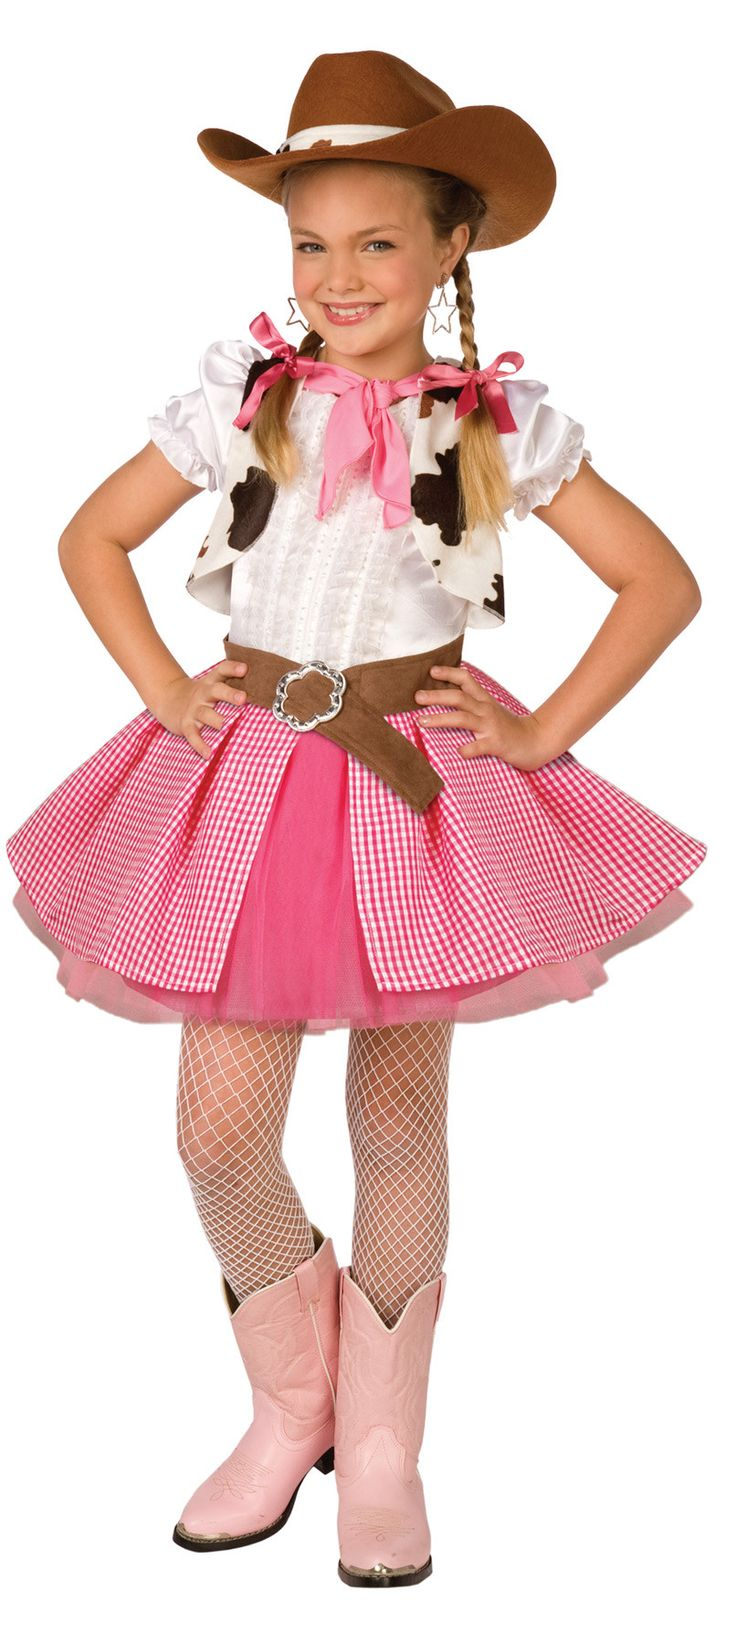 Cowgirl dress with vest, neck kerchief, and hat. Girl's small fits sizes 4-6.